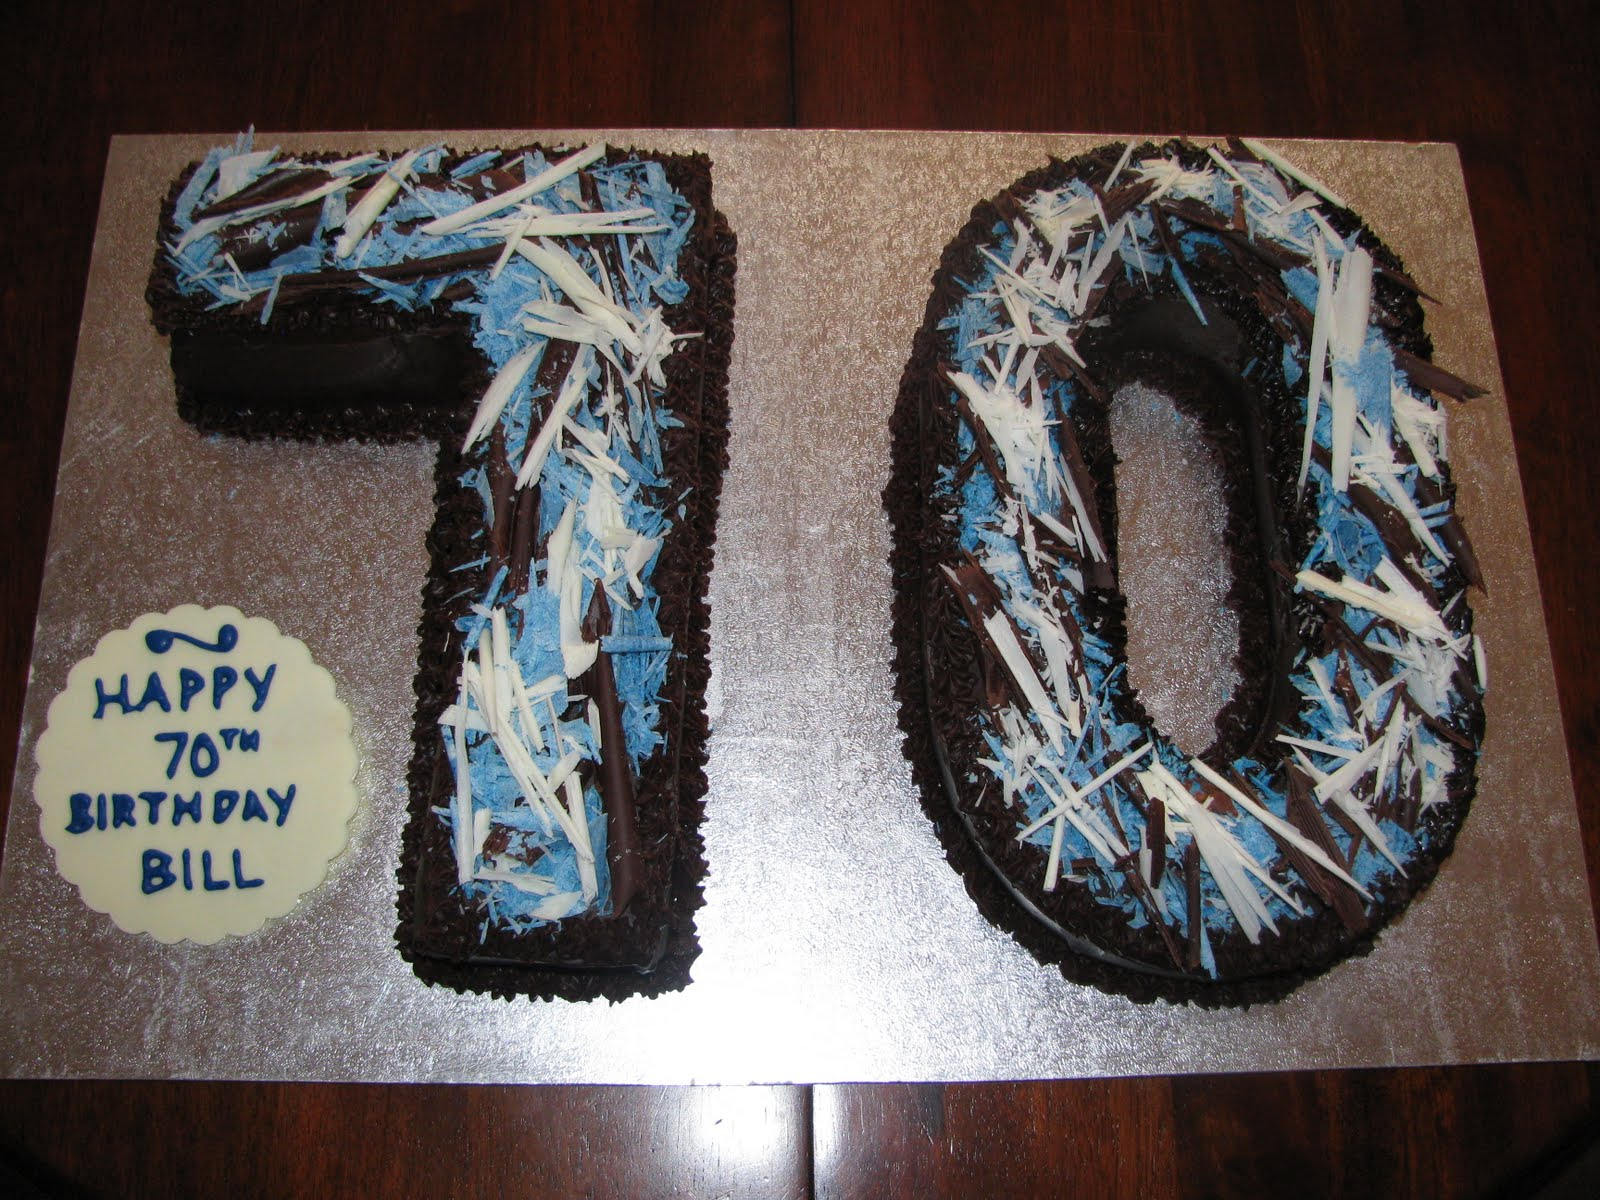 70Th Birthday Cakes for Men http://kristyskakes.blogspot.com/